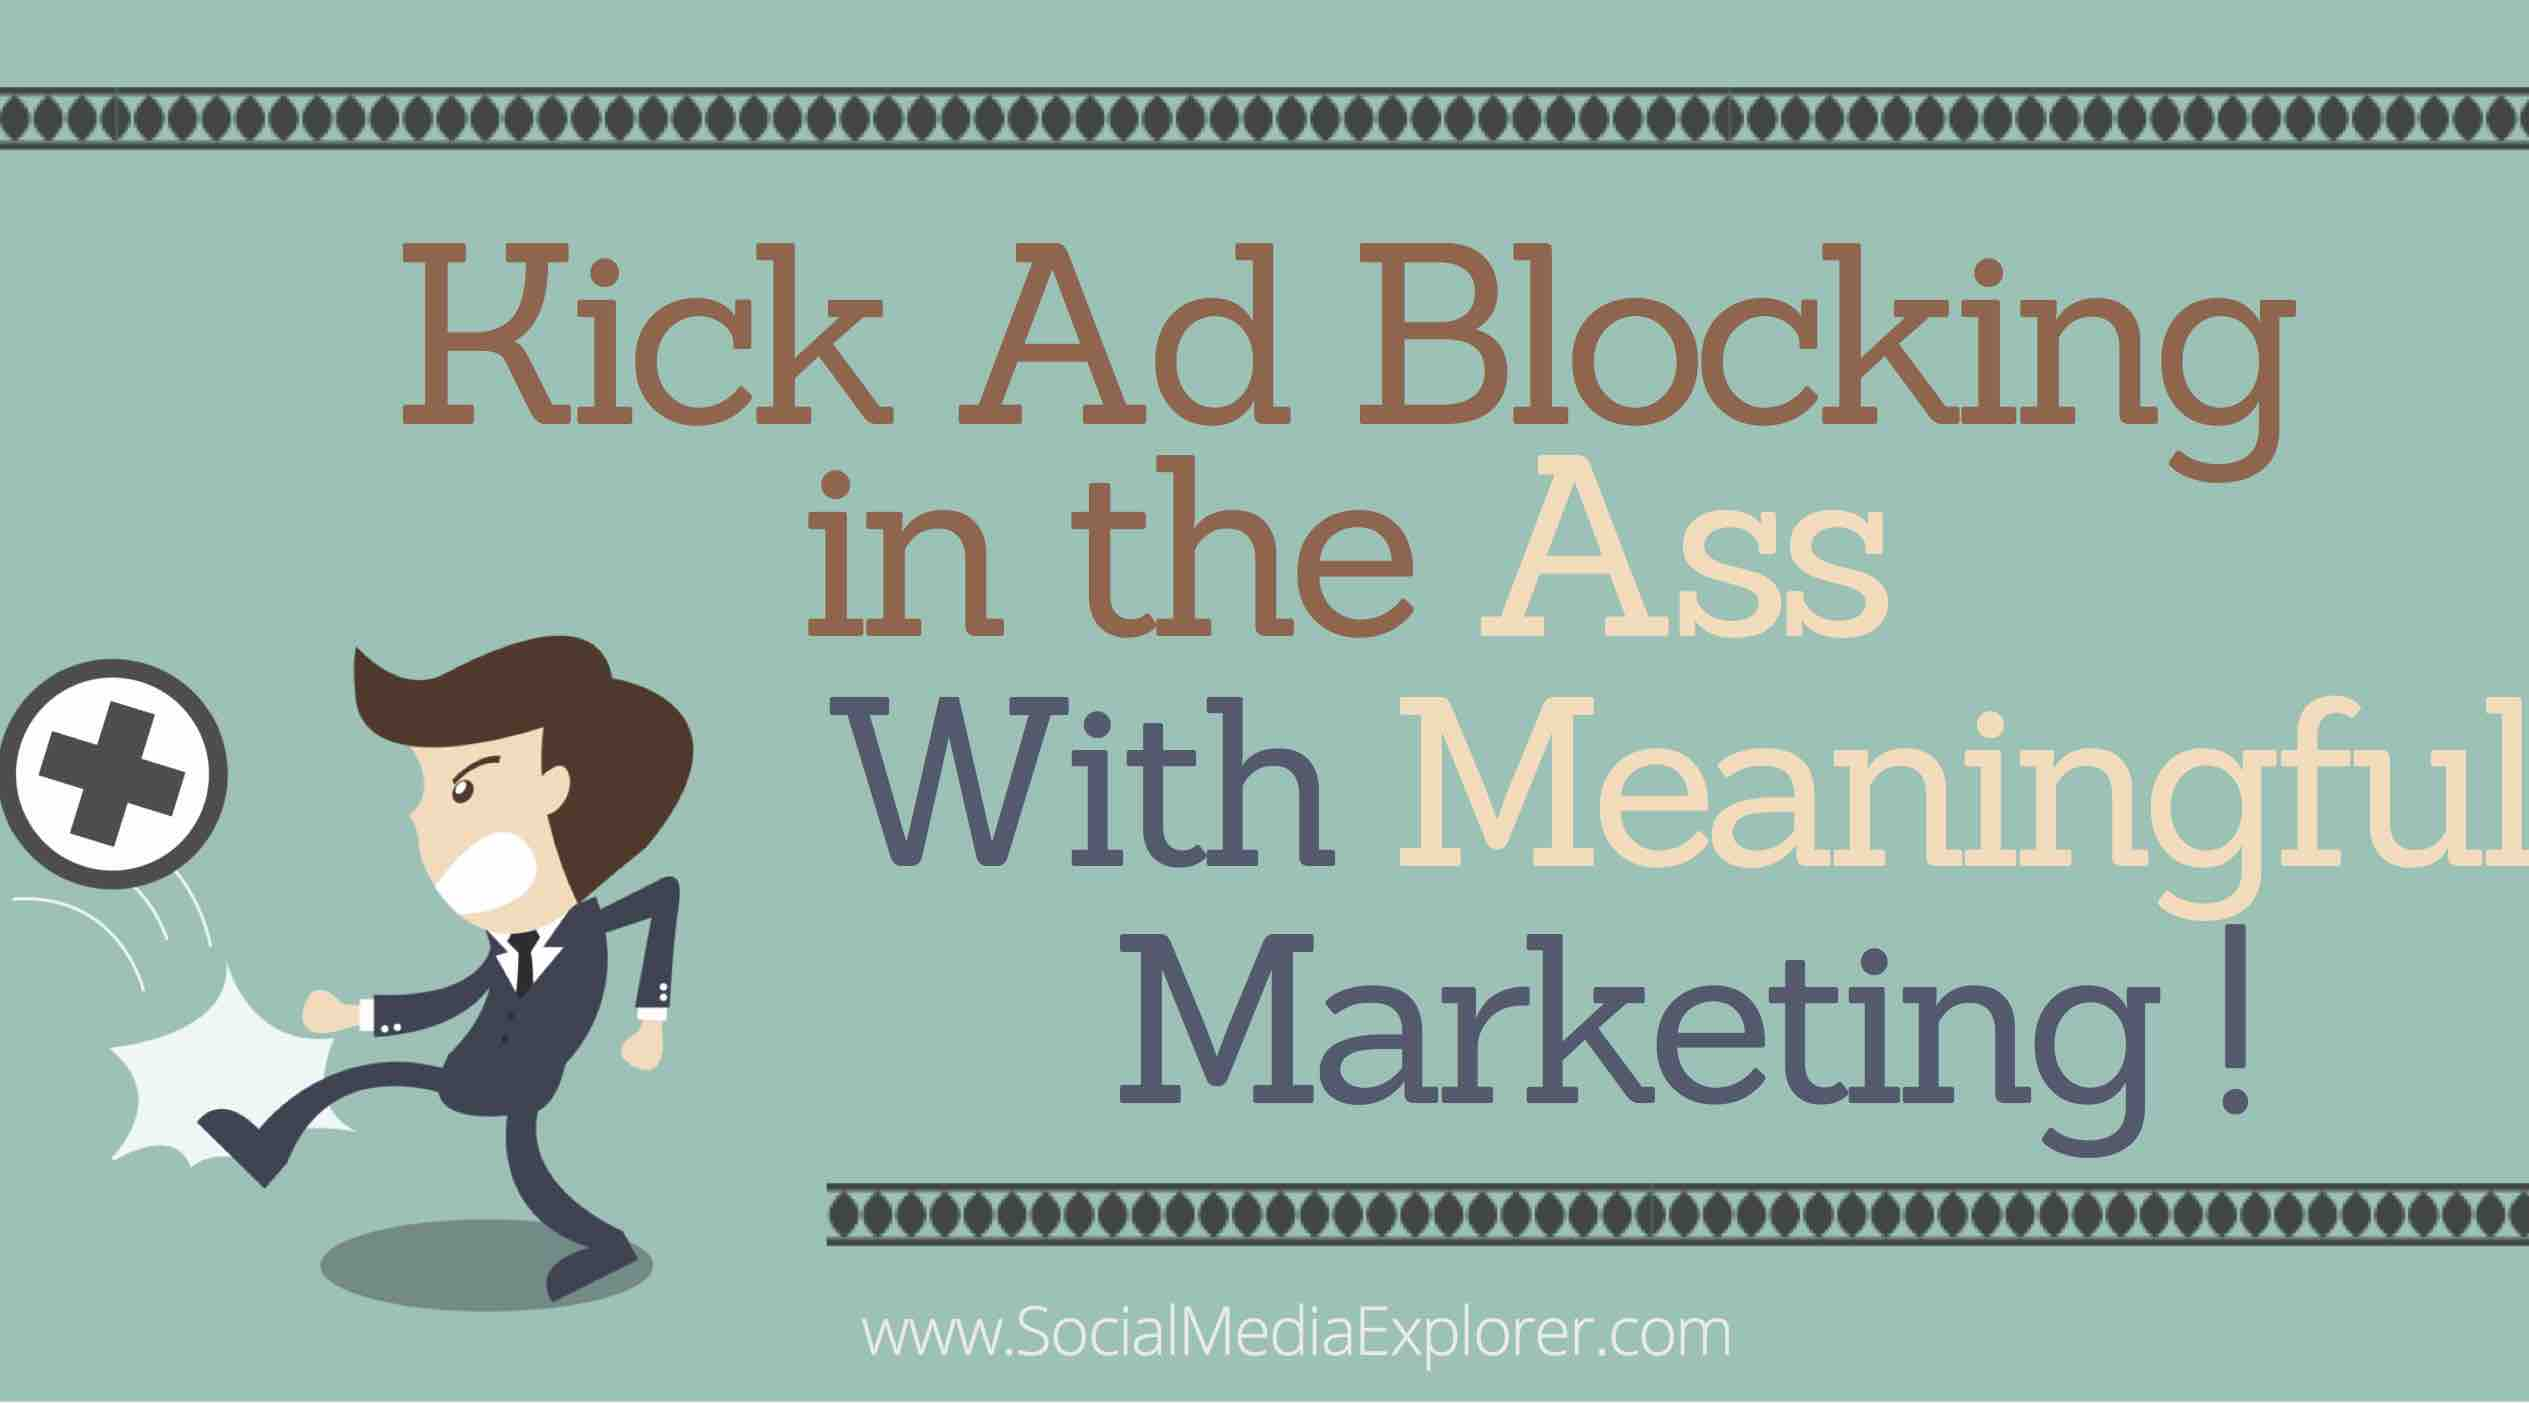 Kick Ad Blocking in the Ass with Meaningful Marketing